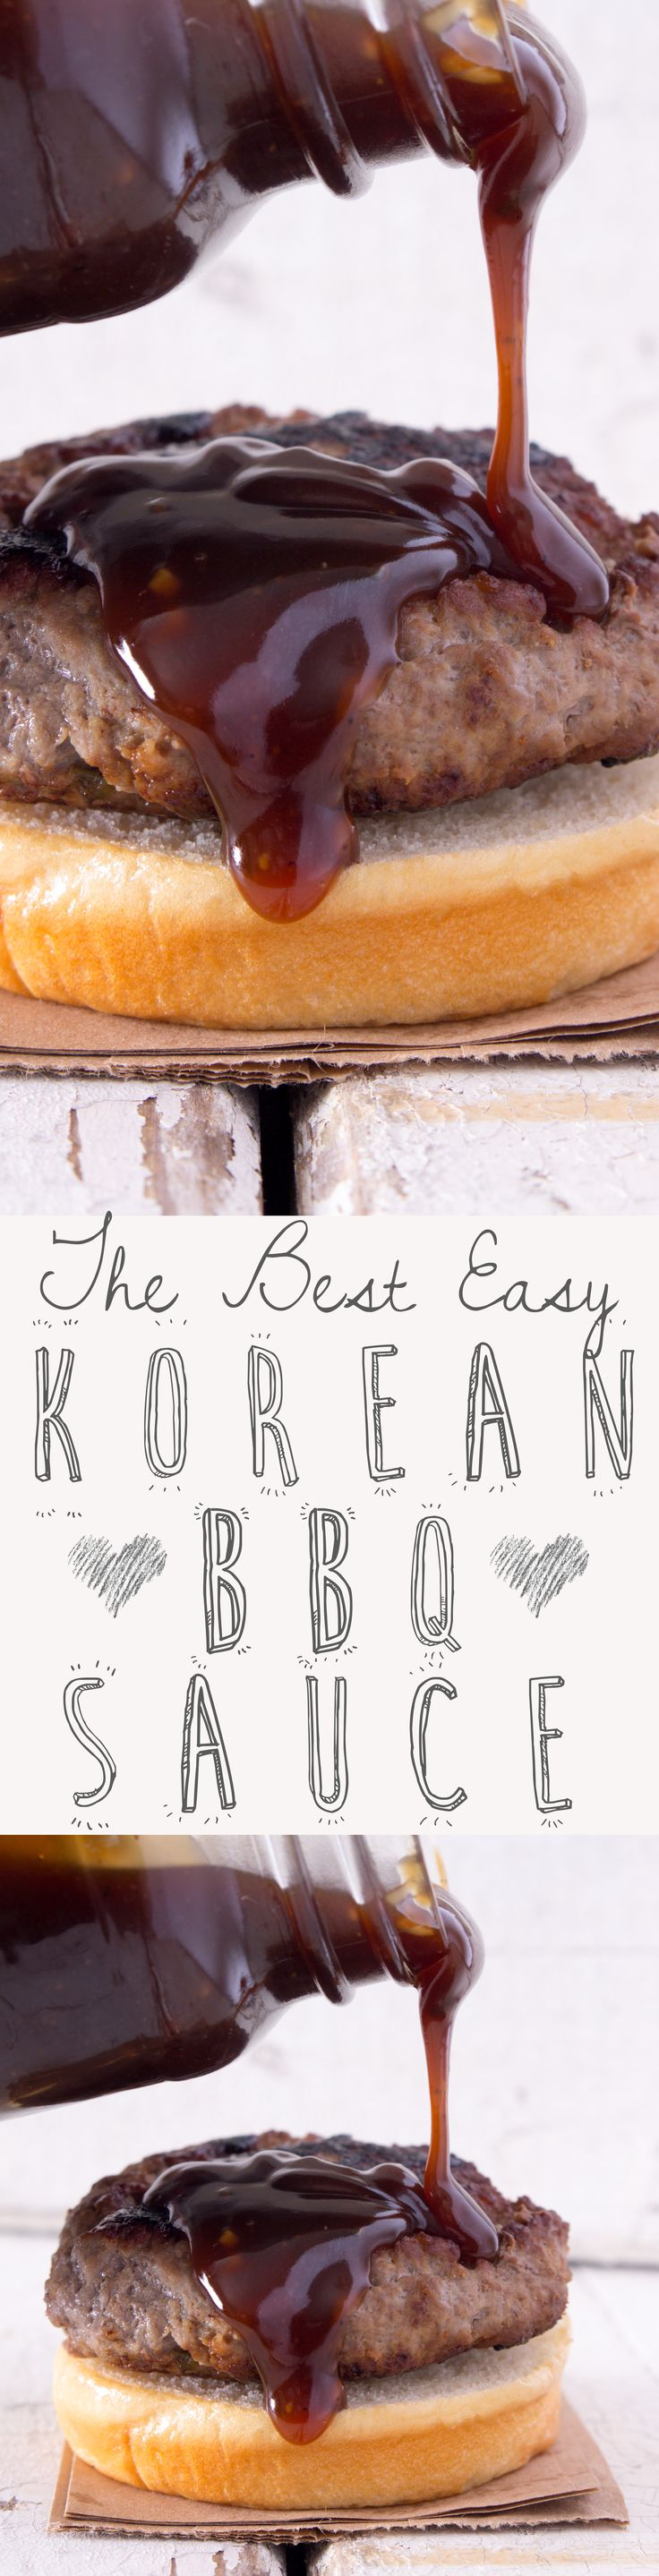 Have you ever tried Korean BBQ Sauce? If you have, then you know how wonderful it is – and if you haven't, you need to make it right now. Literally, right now. It's everything. We've eaten this on pork, chicken, meatballs, burgers – the blend of sweet, savory, salty, tangy, and hot is perfection – did I mention gluten-free, dairy-free, and vegan?